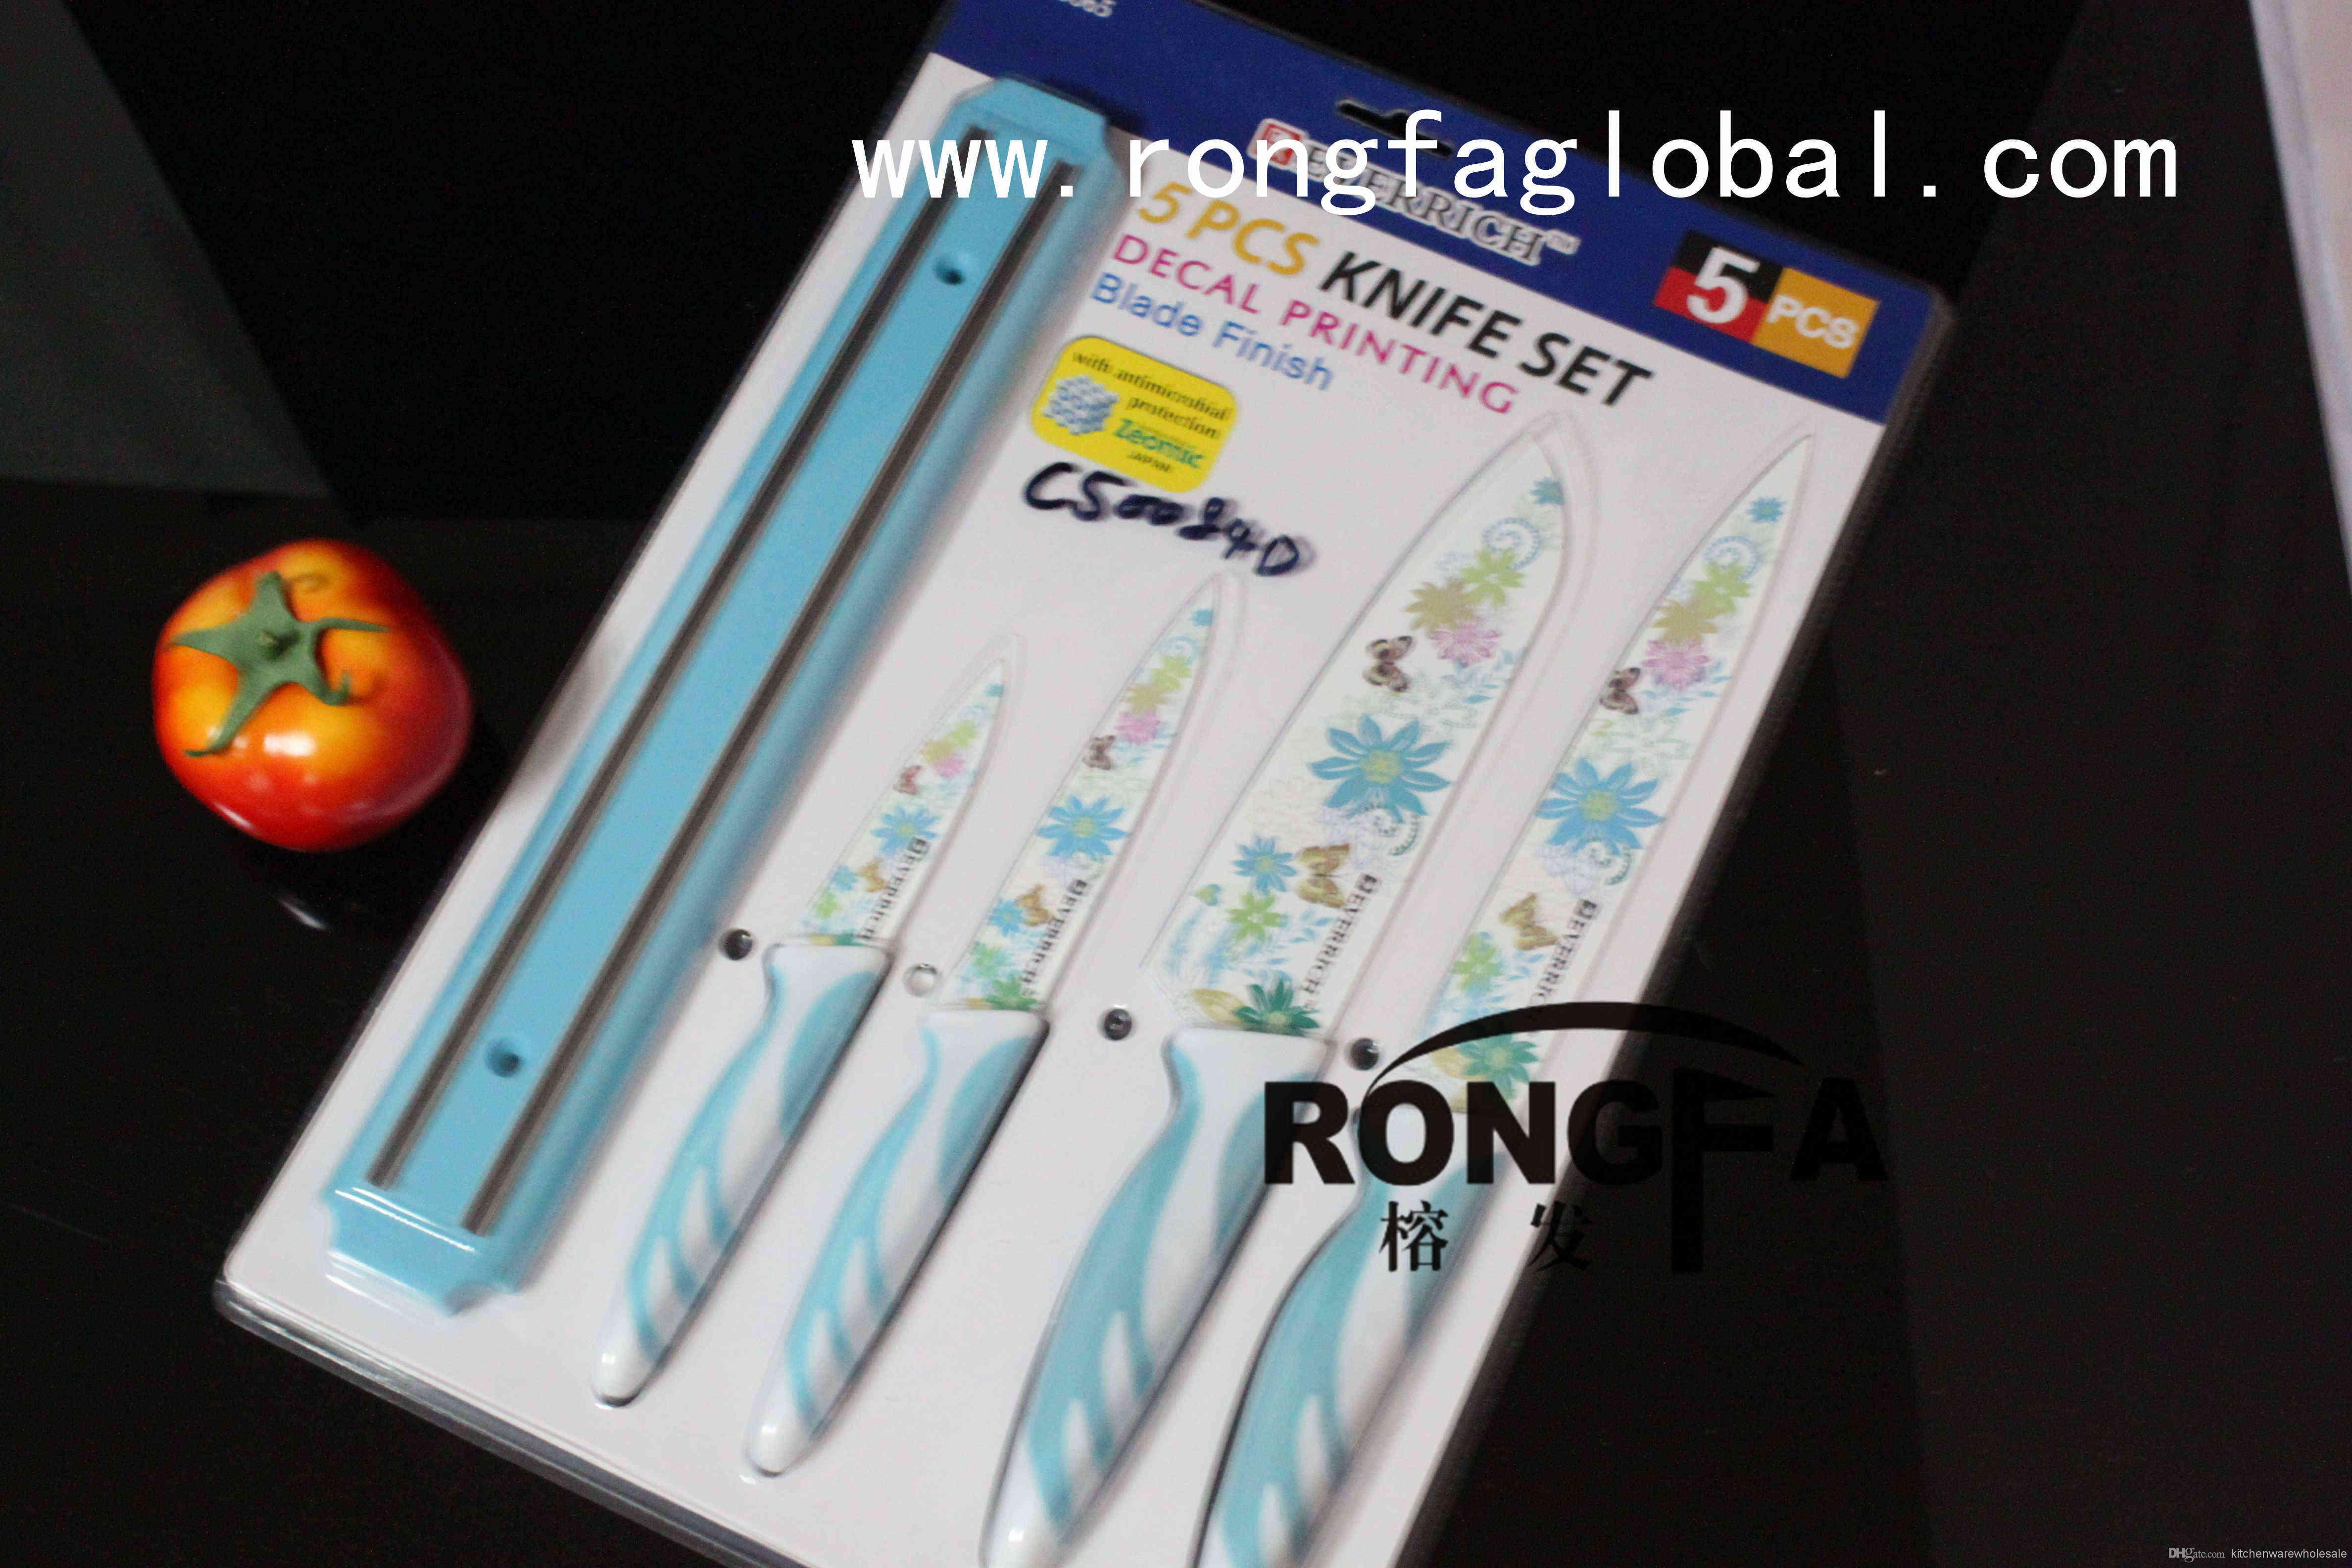 everrich color knife set with magnet knife rack decal printing